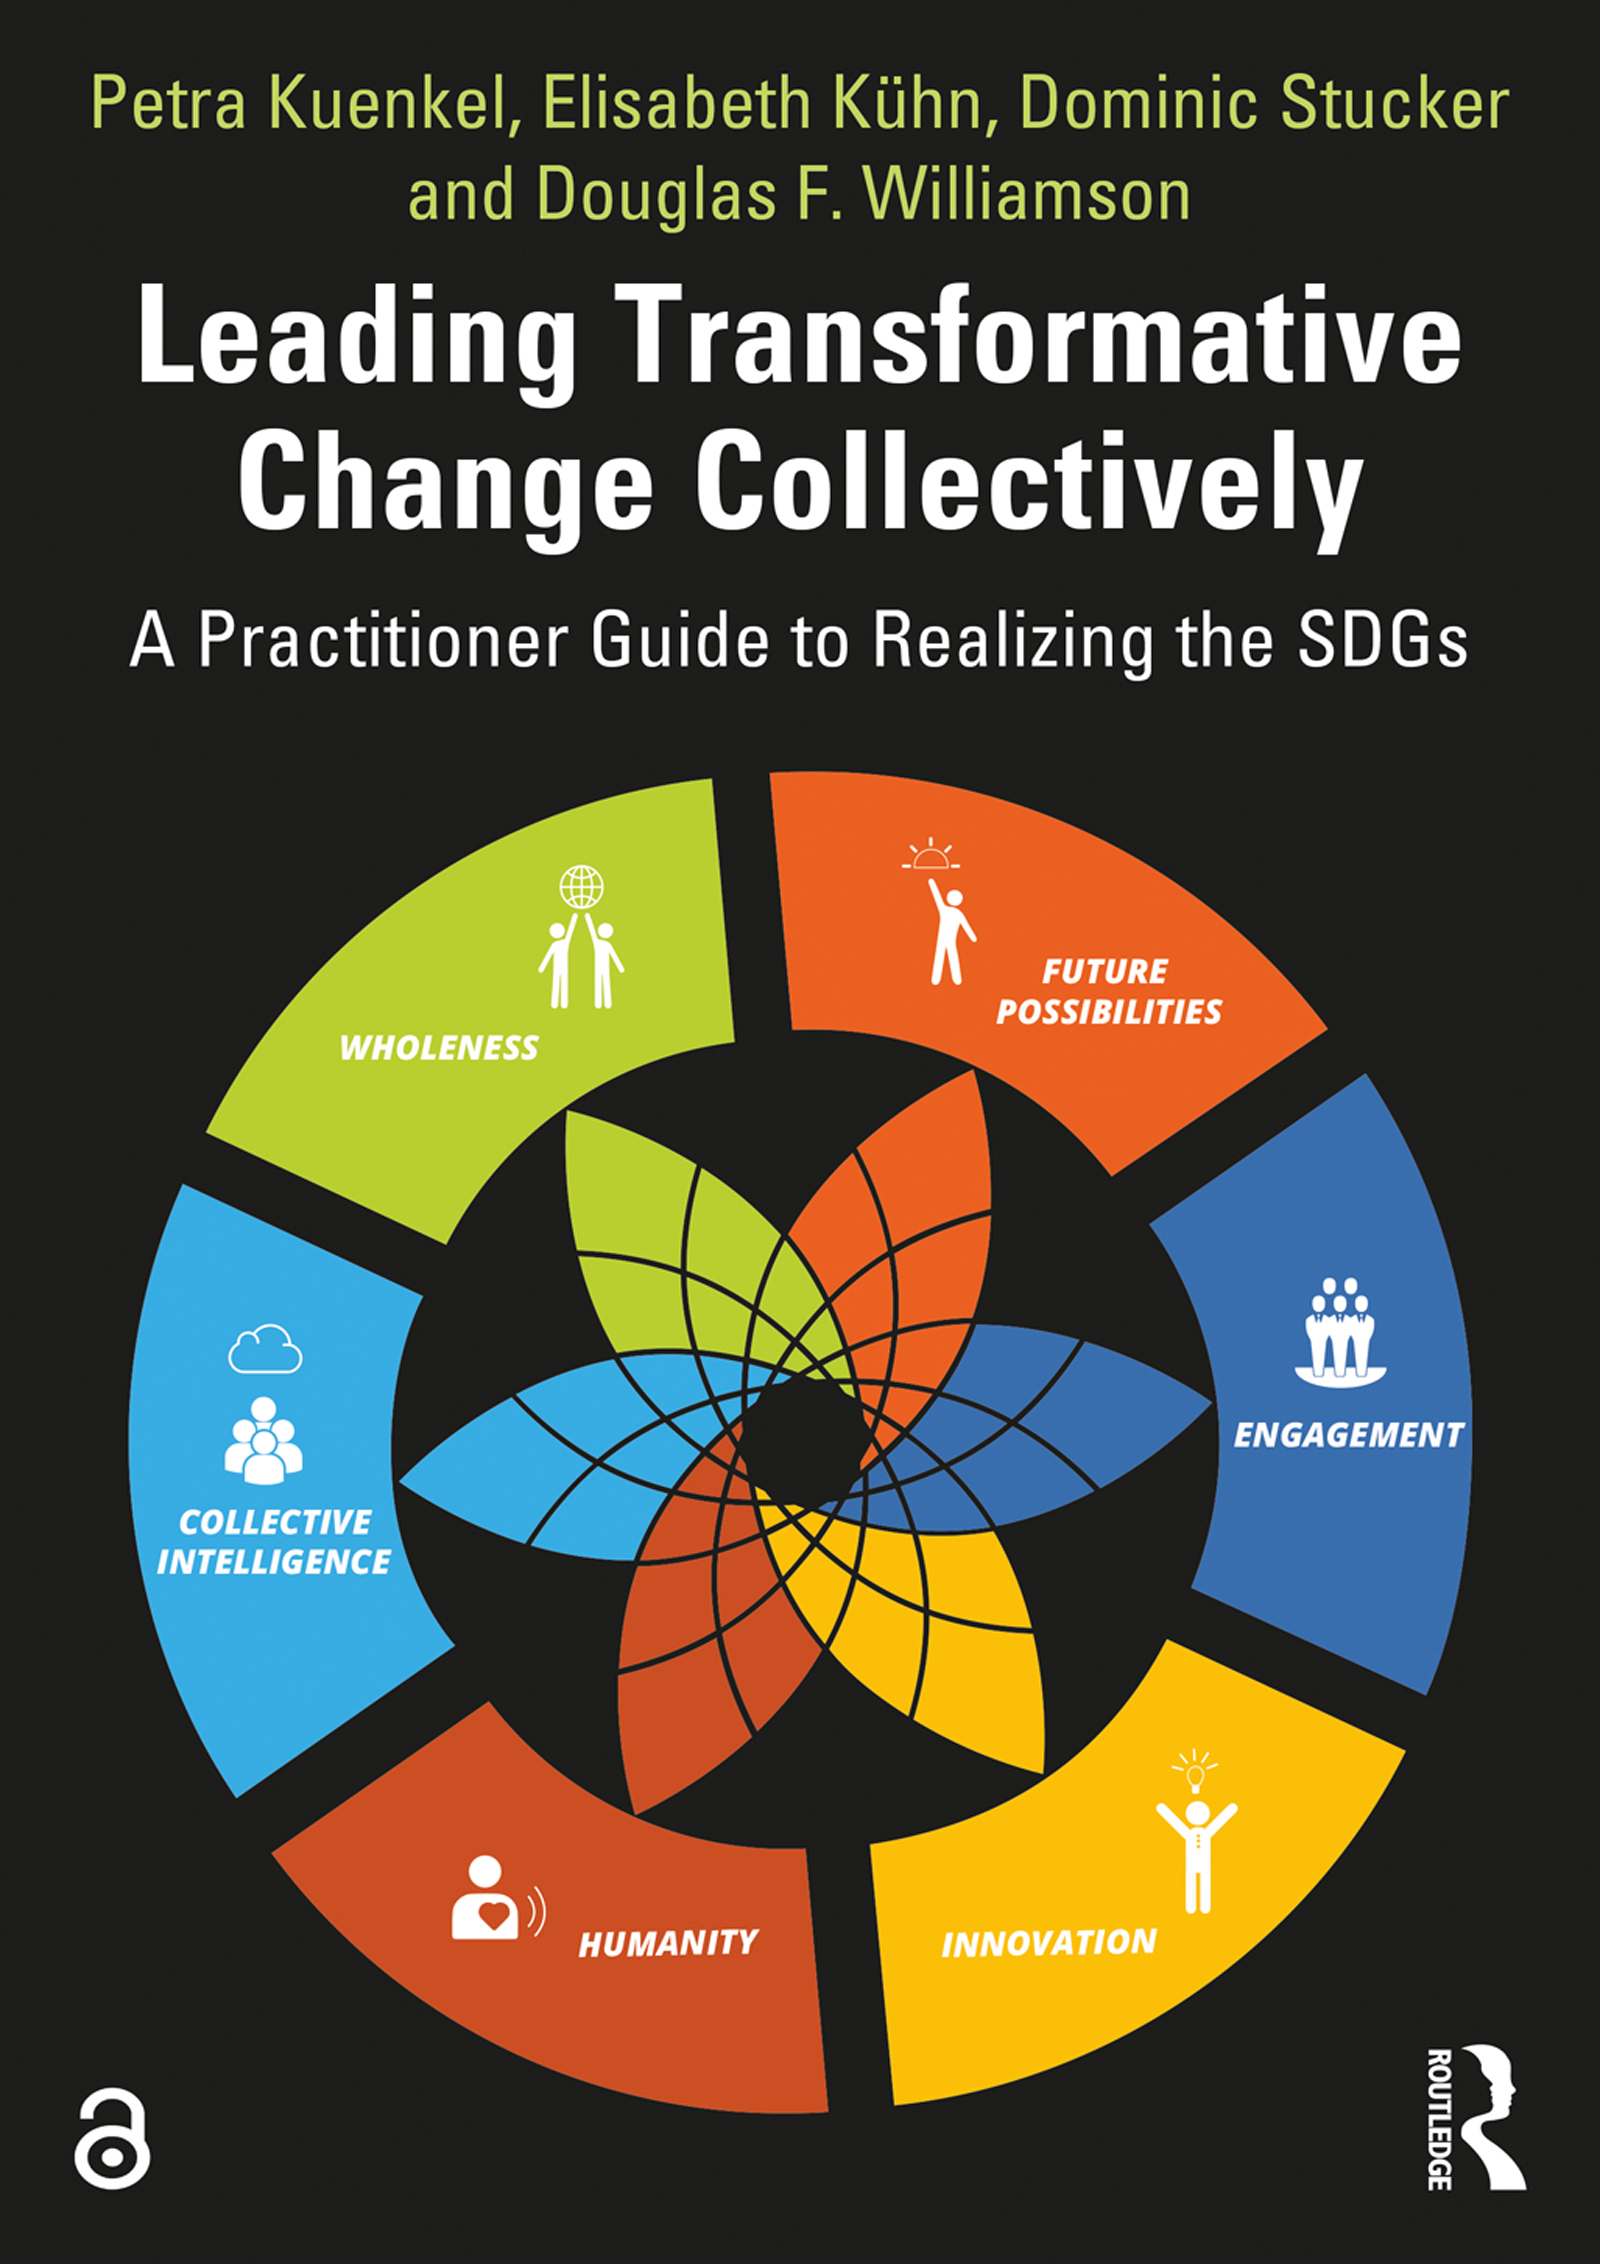 Leading Transformative Change Collectively